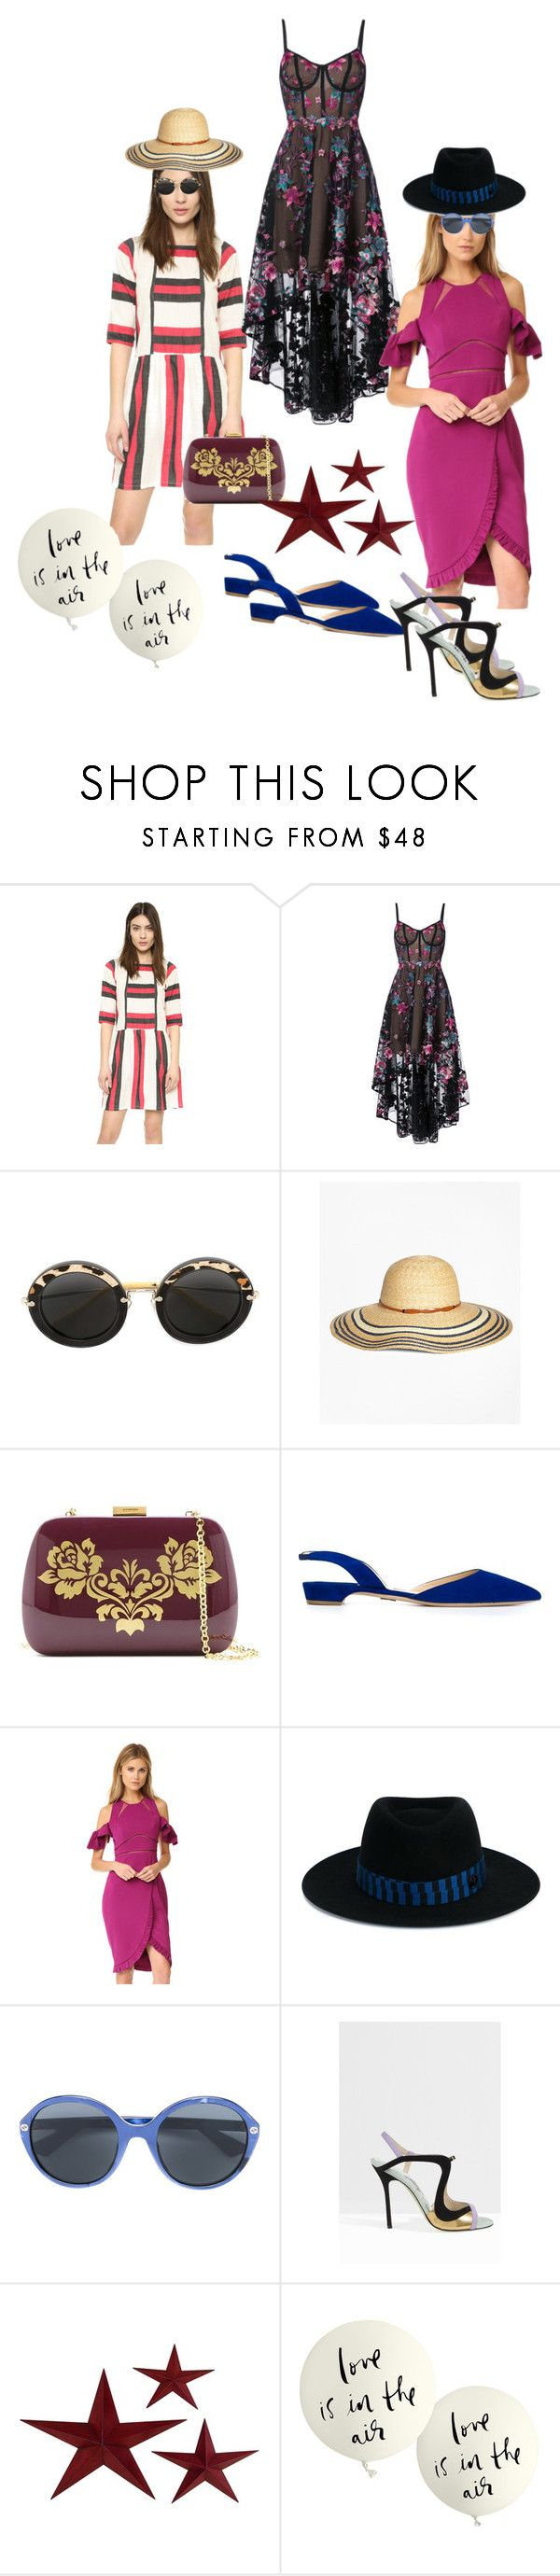 """Summer needs"" by ramakumari ❤ liked on Polyvore featuring Notte by Marchesa, Miu Miu, Brooks Brothers, Serpui, Paul Andrew, Three Floor, Maison Michel, Gucci, Giannico and Kate Spade"